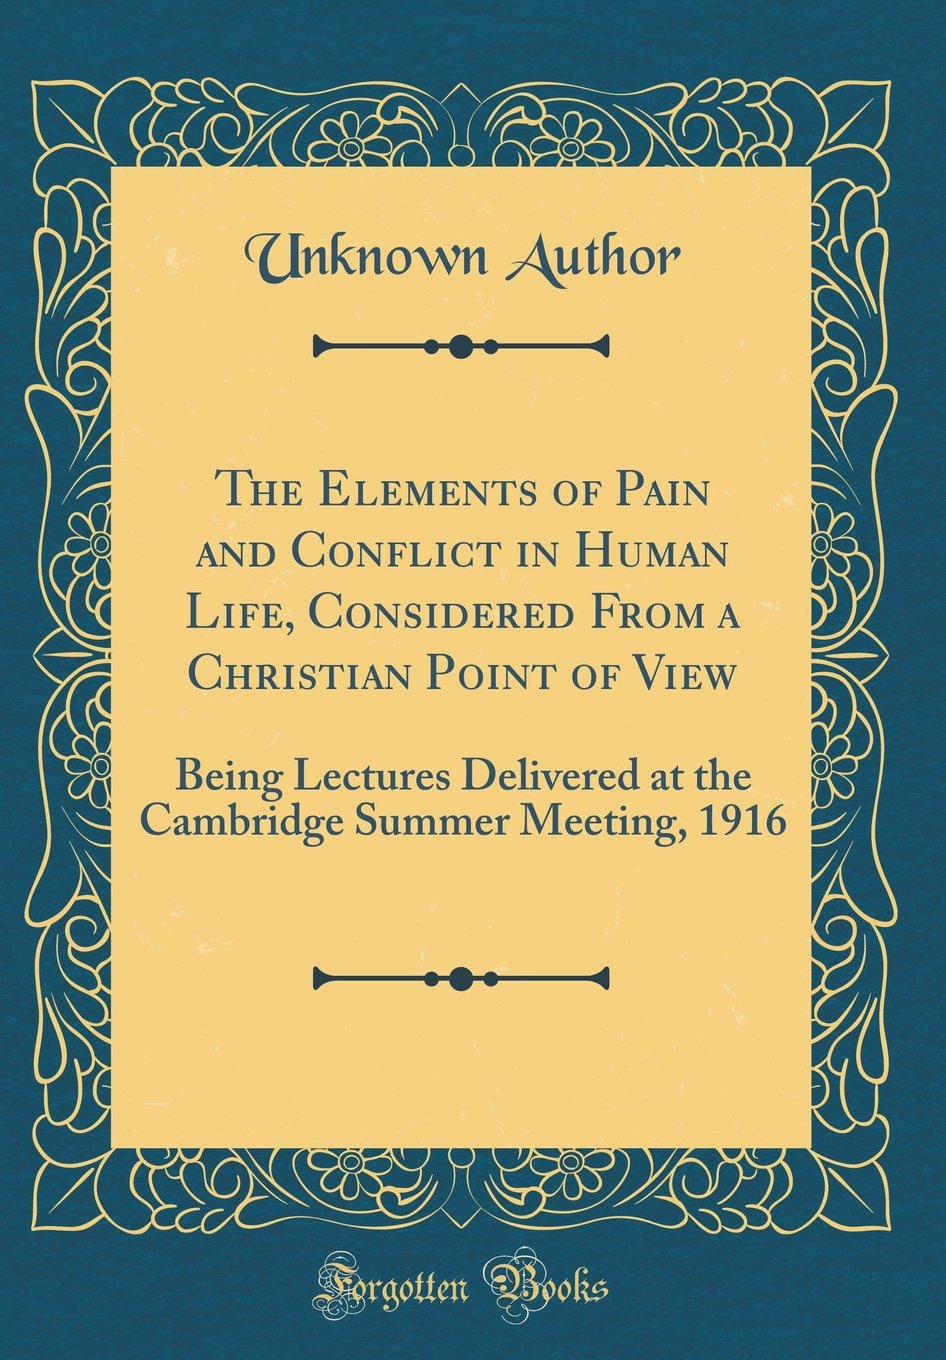 The Elements of Pain and Conflict in Human Life, Considered From a Christian Point of View: Being Lectures Delivered at the Cambridge Summer Meeting, 1916 (Classic Reprint) pdf